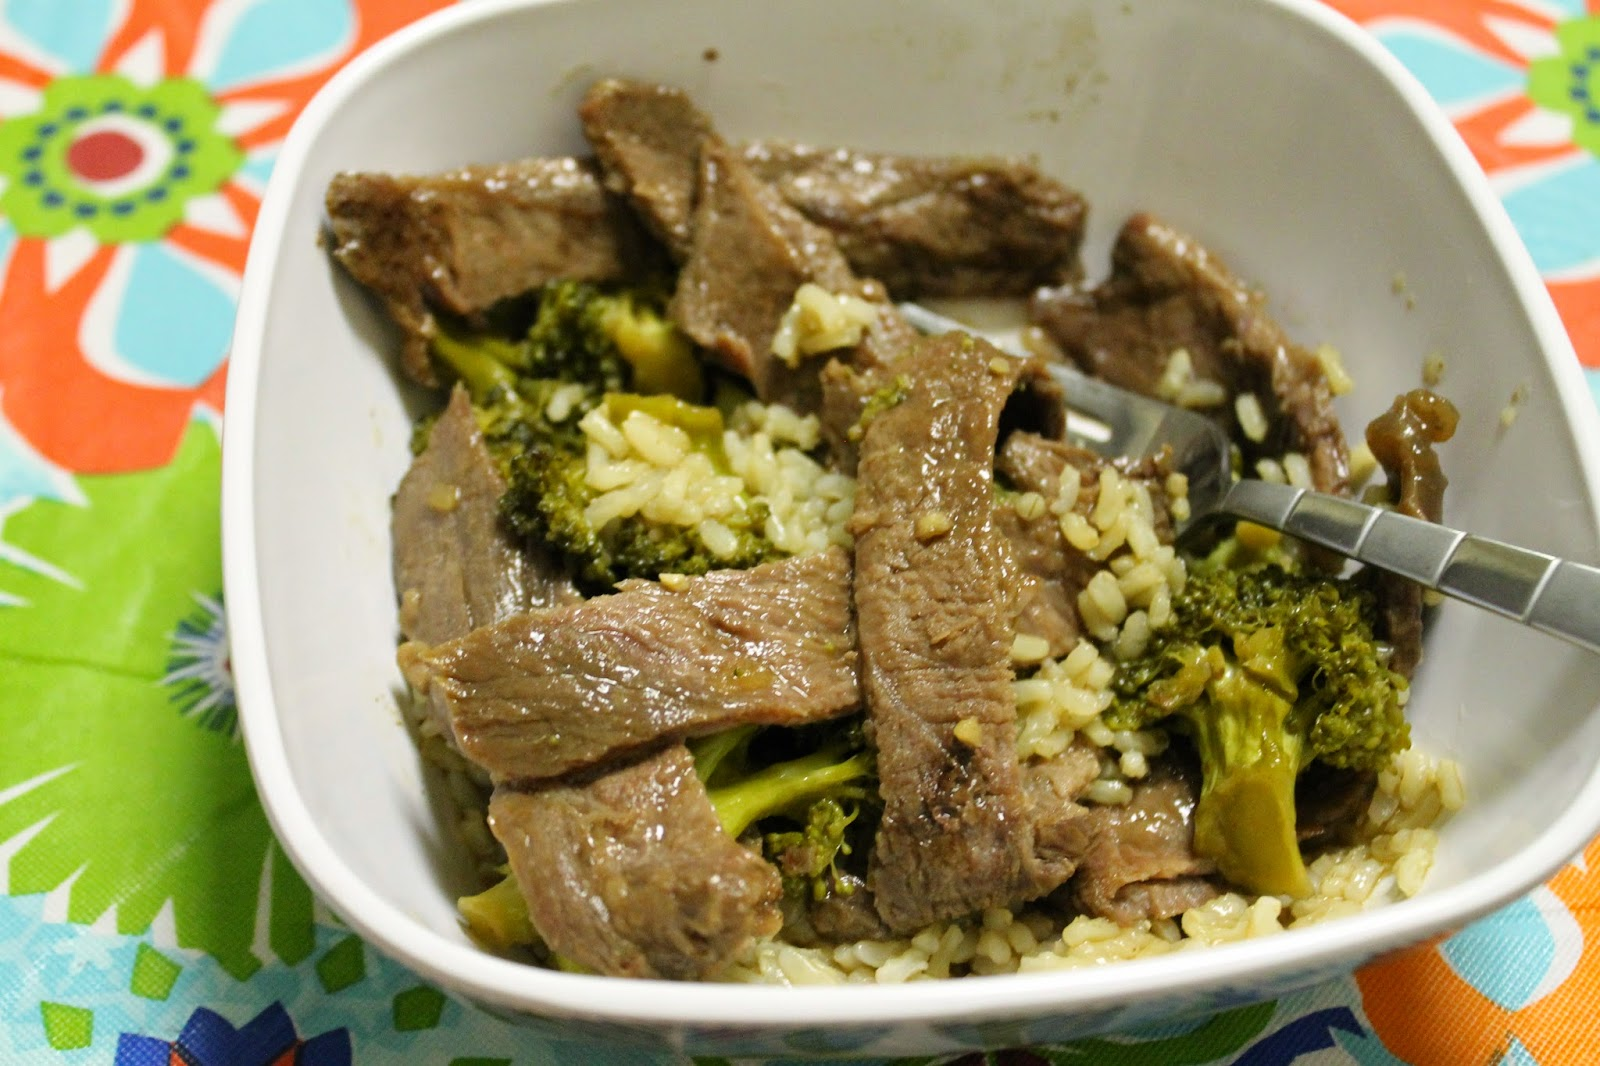 Slow Cooker Beef & Broccoli | An easy but fantastic crockpot meal #recipe #crockpot #beef